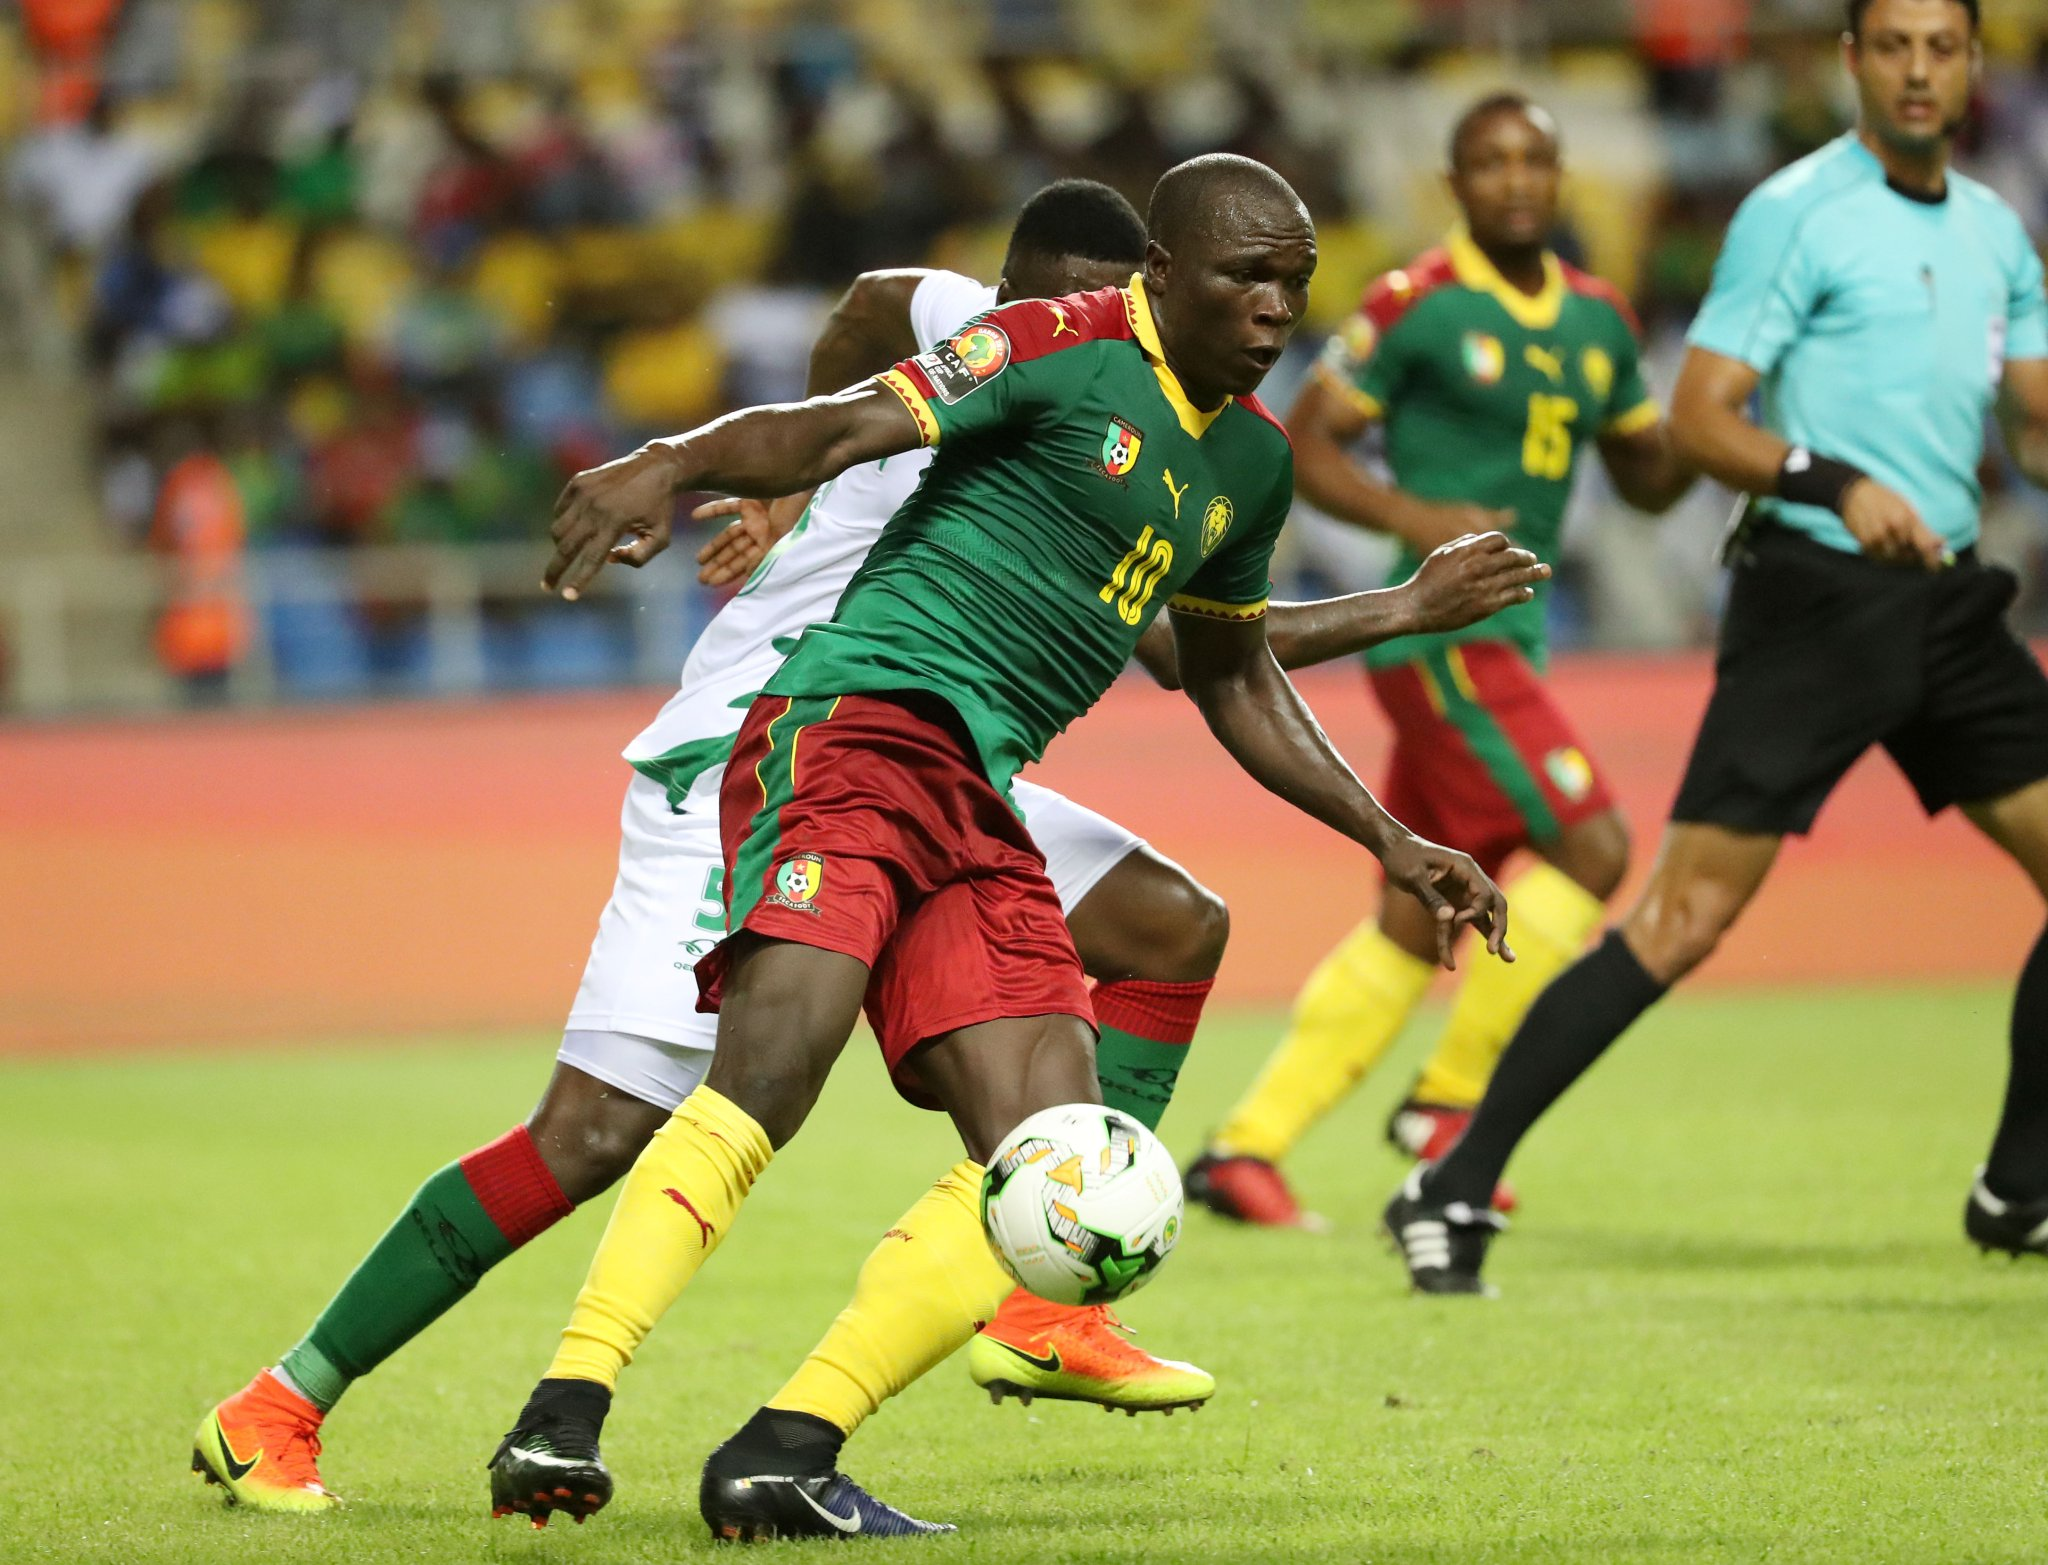 AFCON: Cameroon Claim Comeback Win Over Guinea Bissau, Top Group A